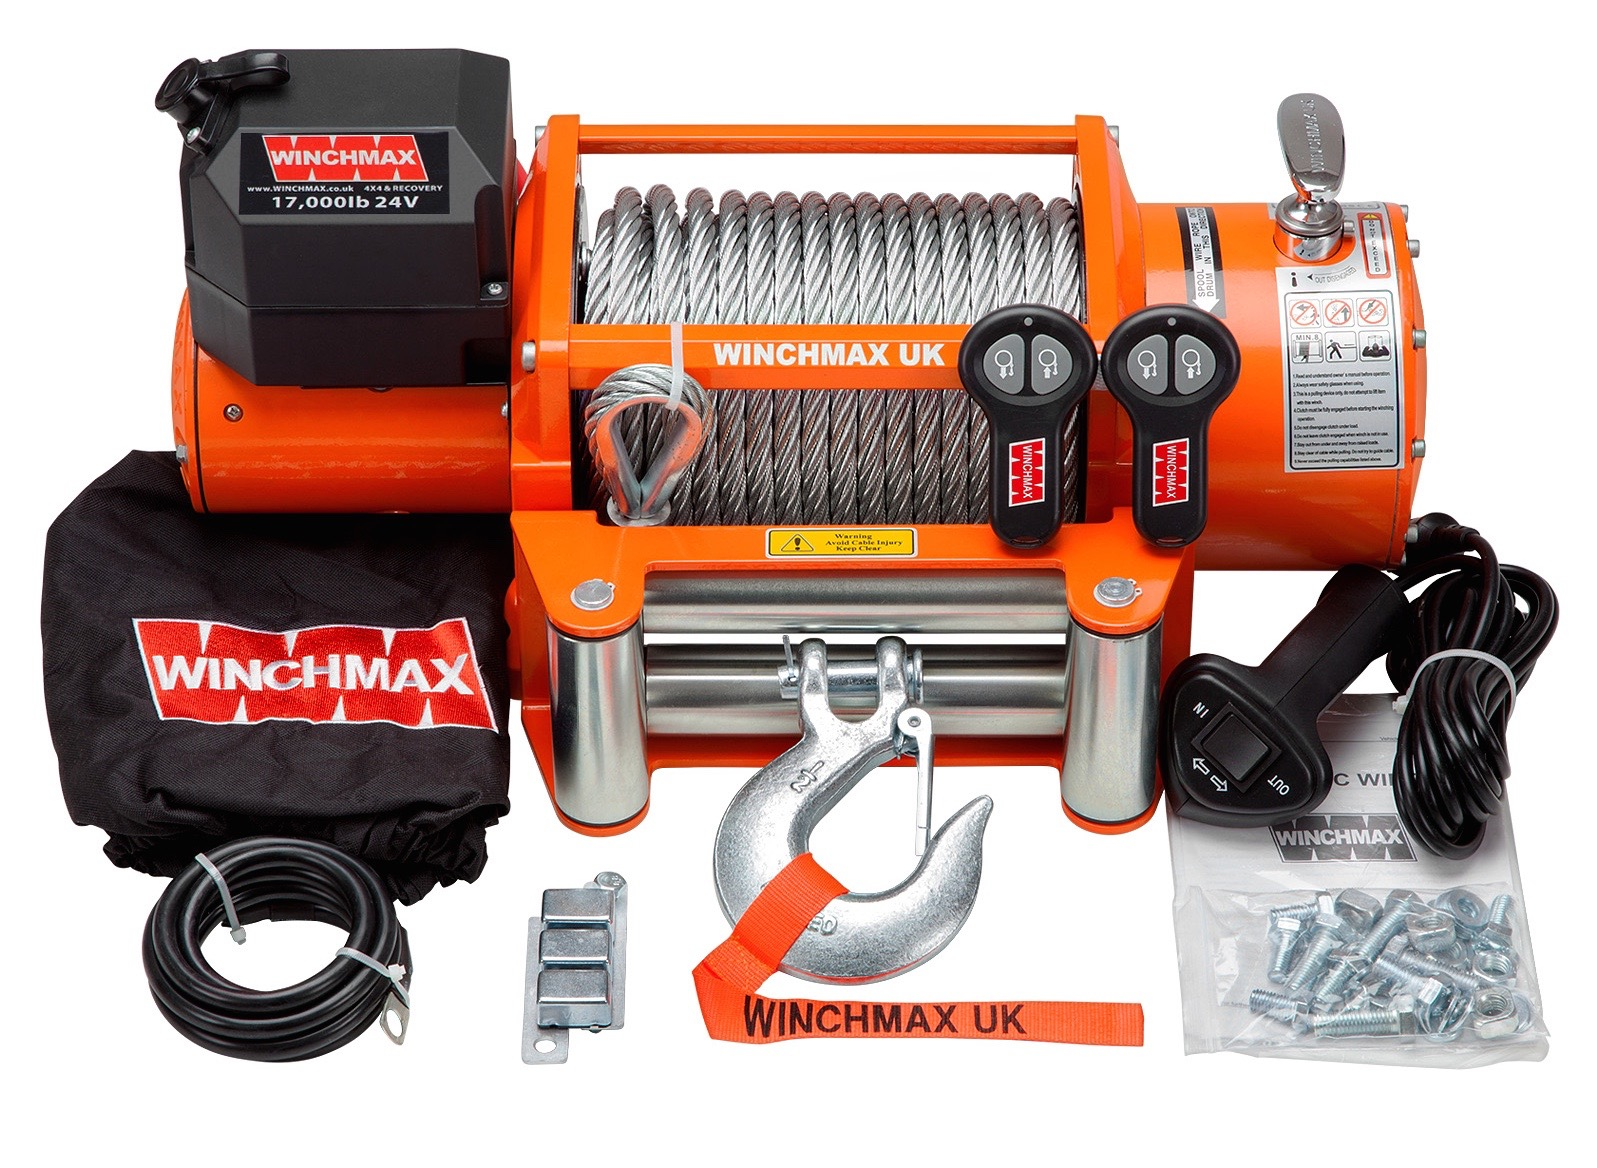 WINCHMAX 17000LB 12V ELECTRIC STEEL CABLE WINCH WITH WIRELESS REMOTES